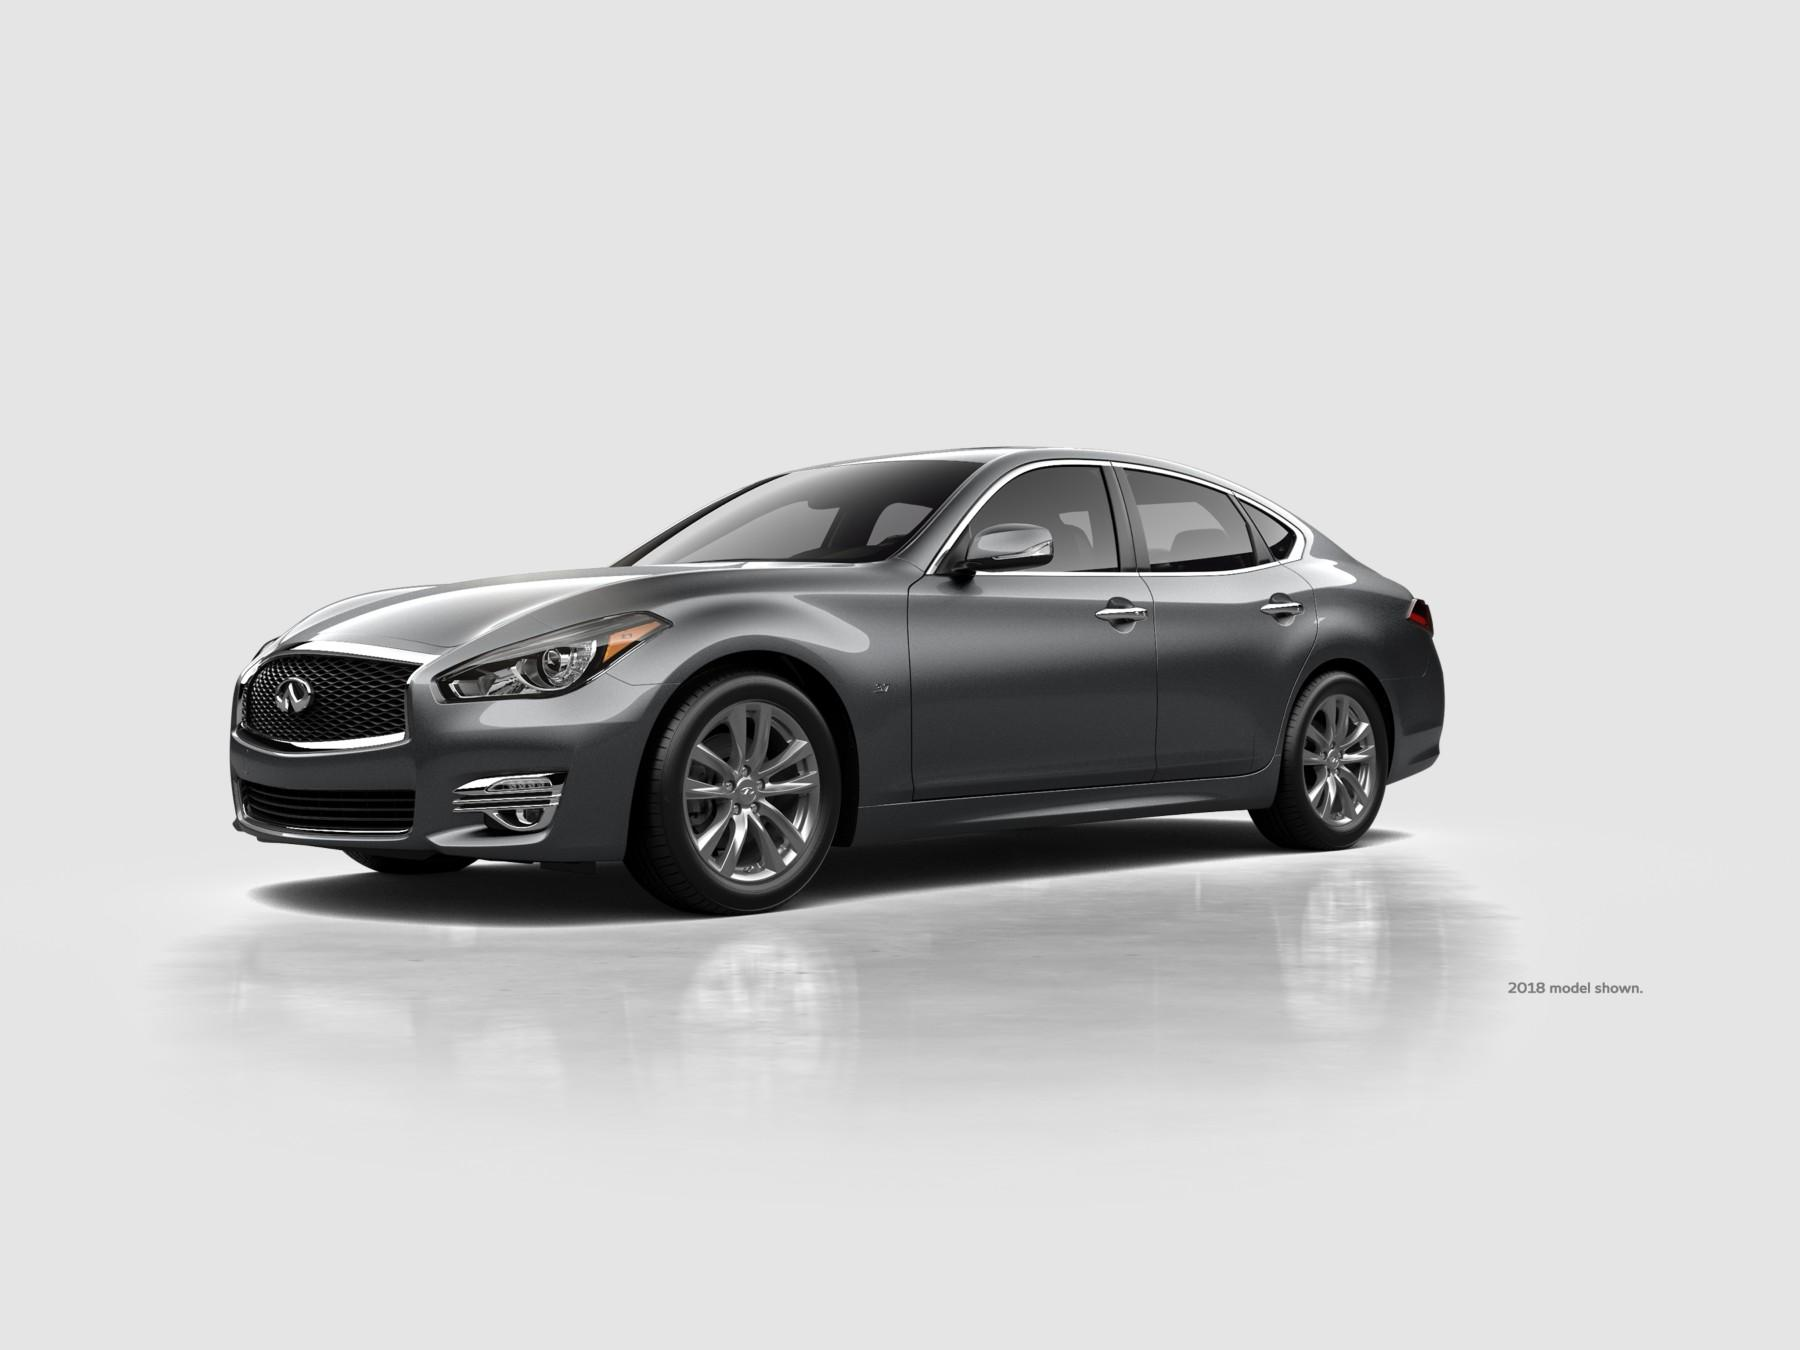 2019 INFINITI Q70 Vehicle Photo in Grapevine, TX 76051